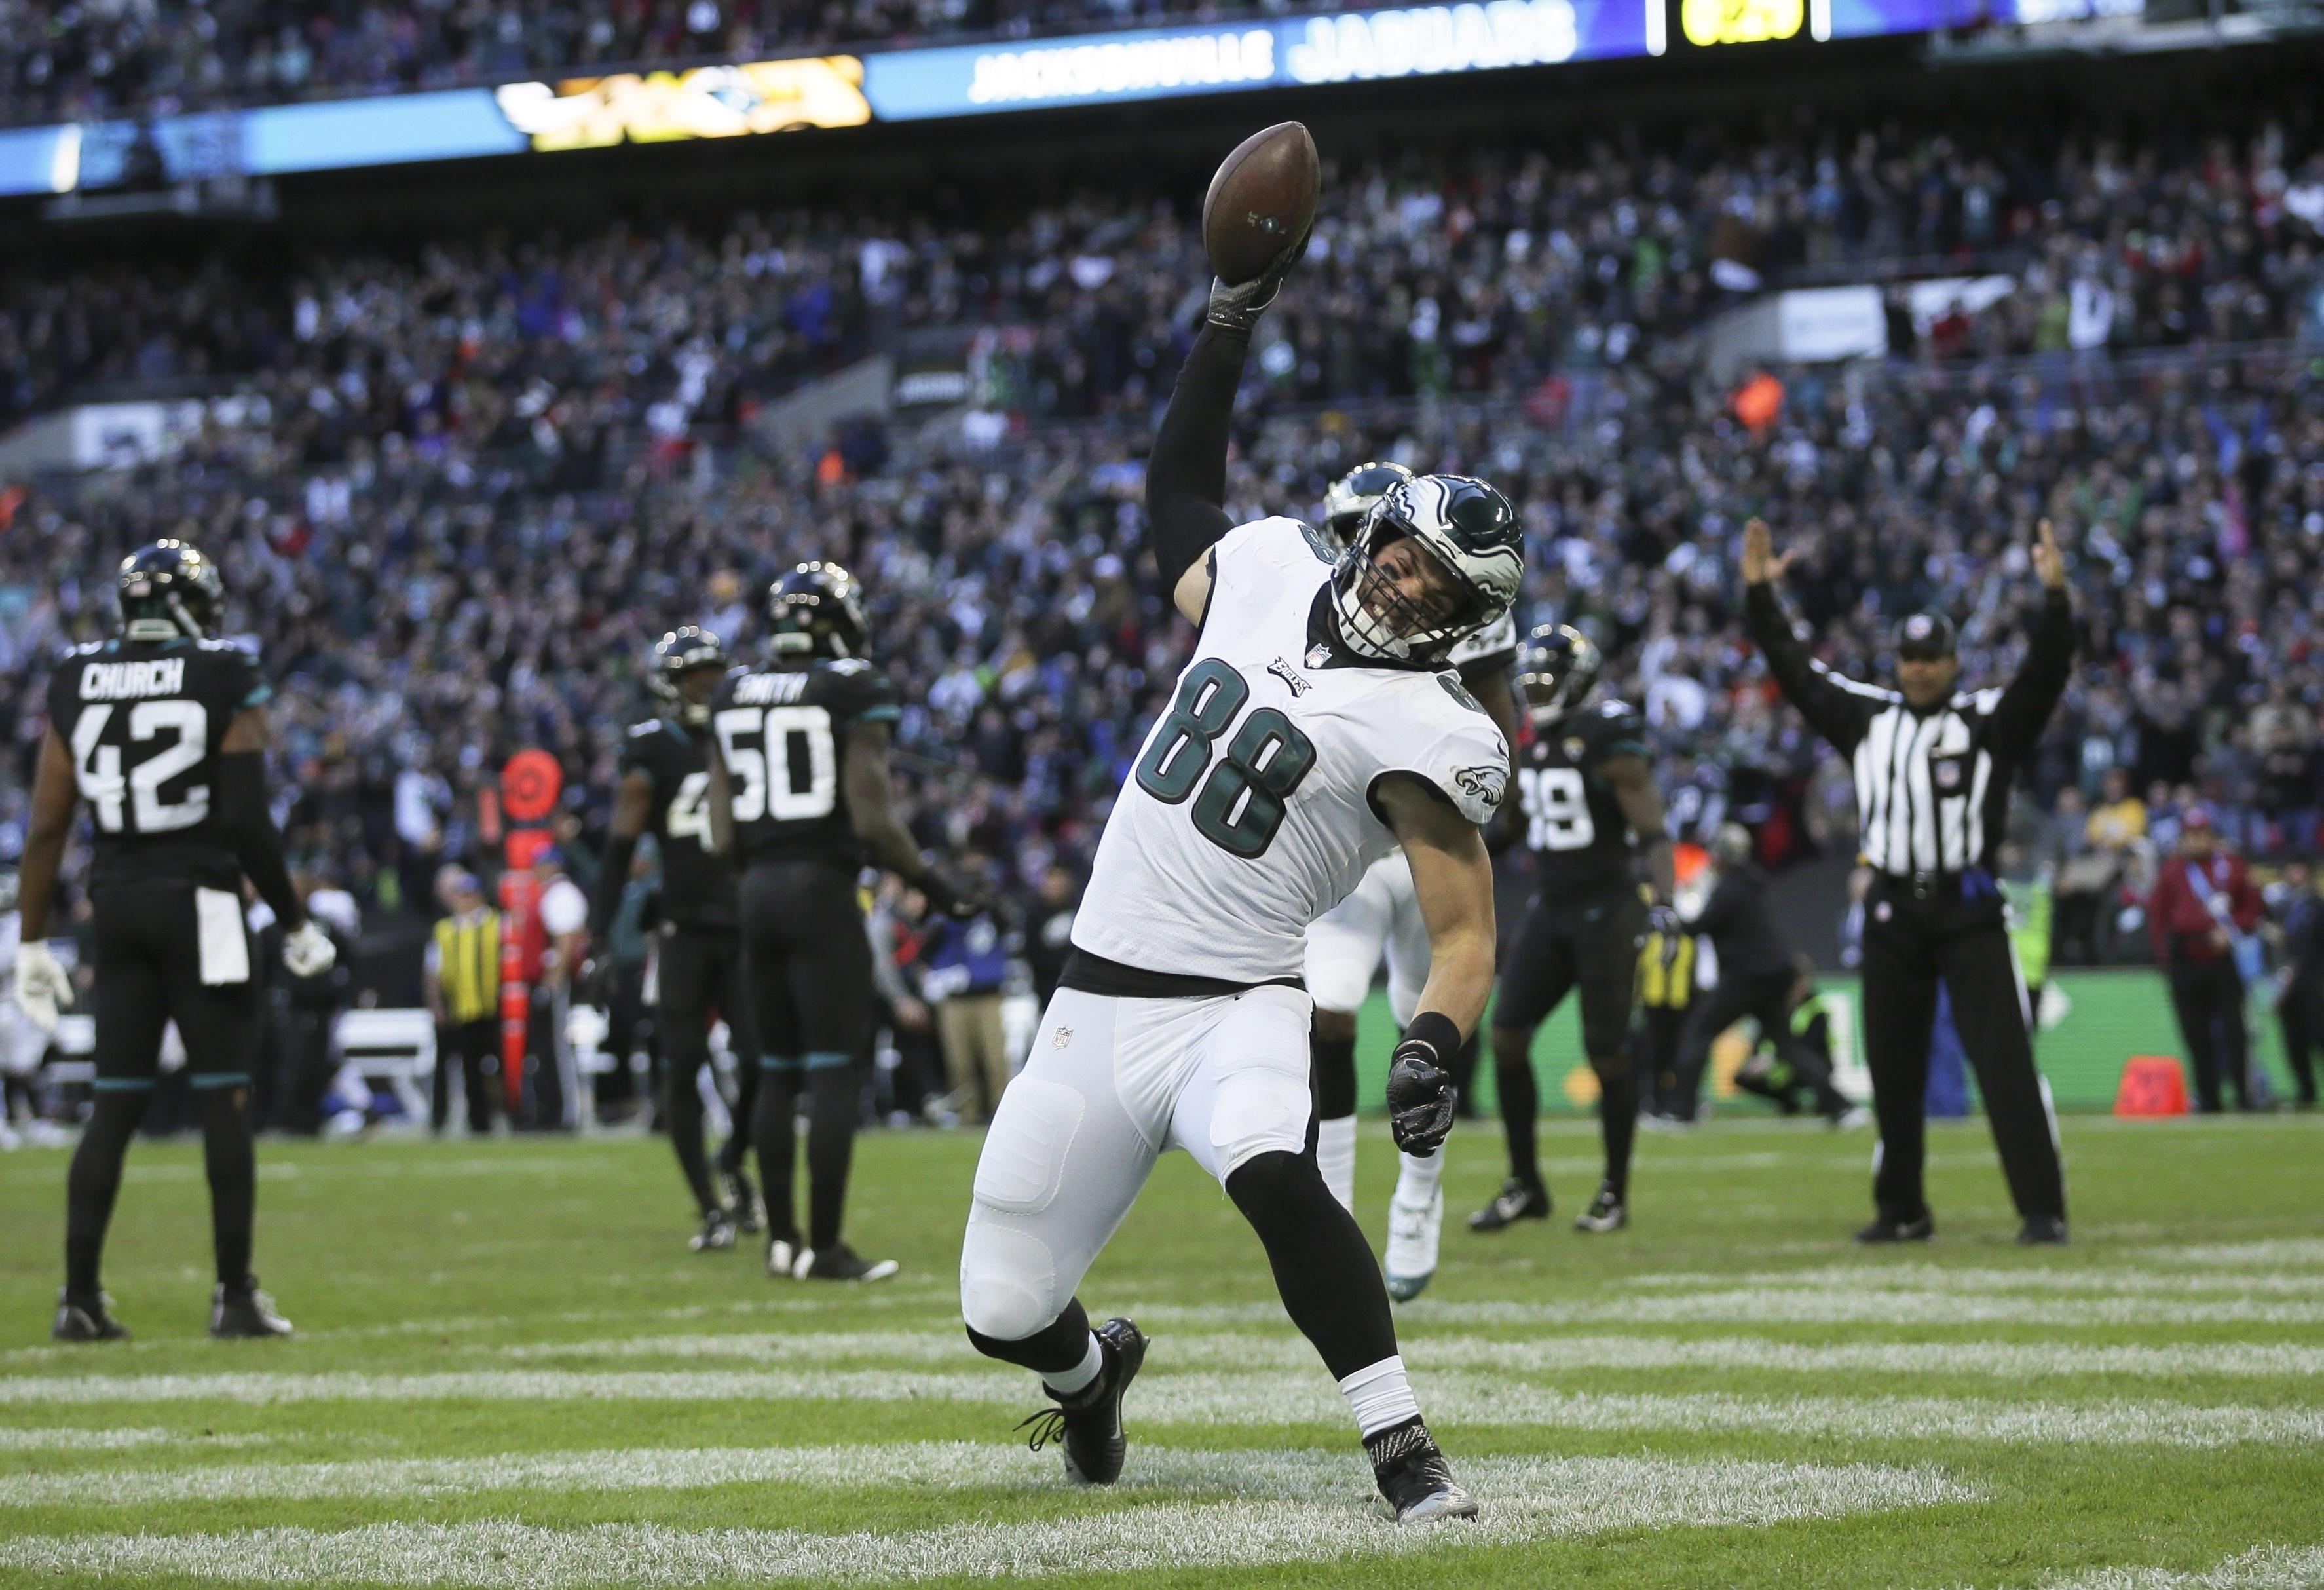 The Philadelphia Eagles came out on top in the latest NFL London game